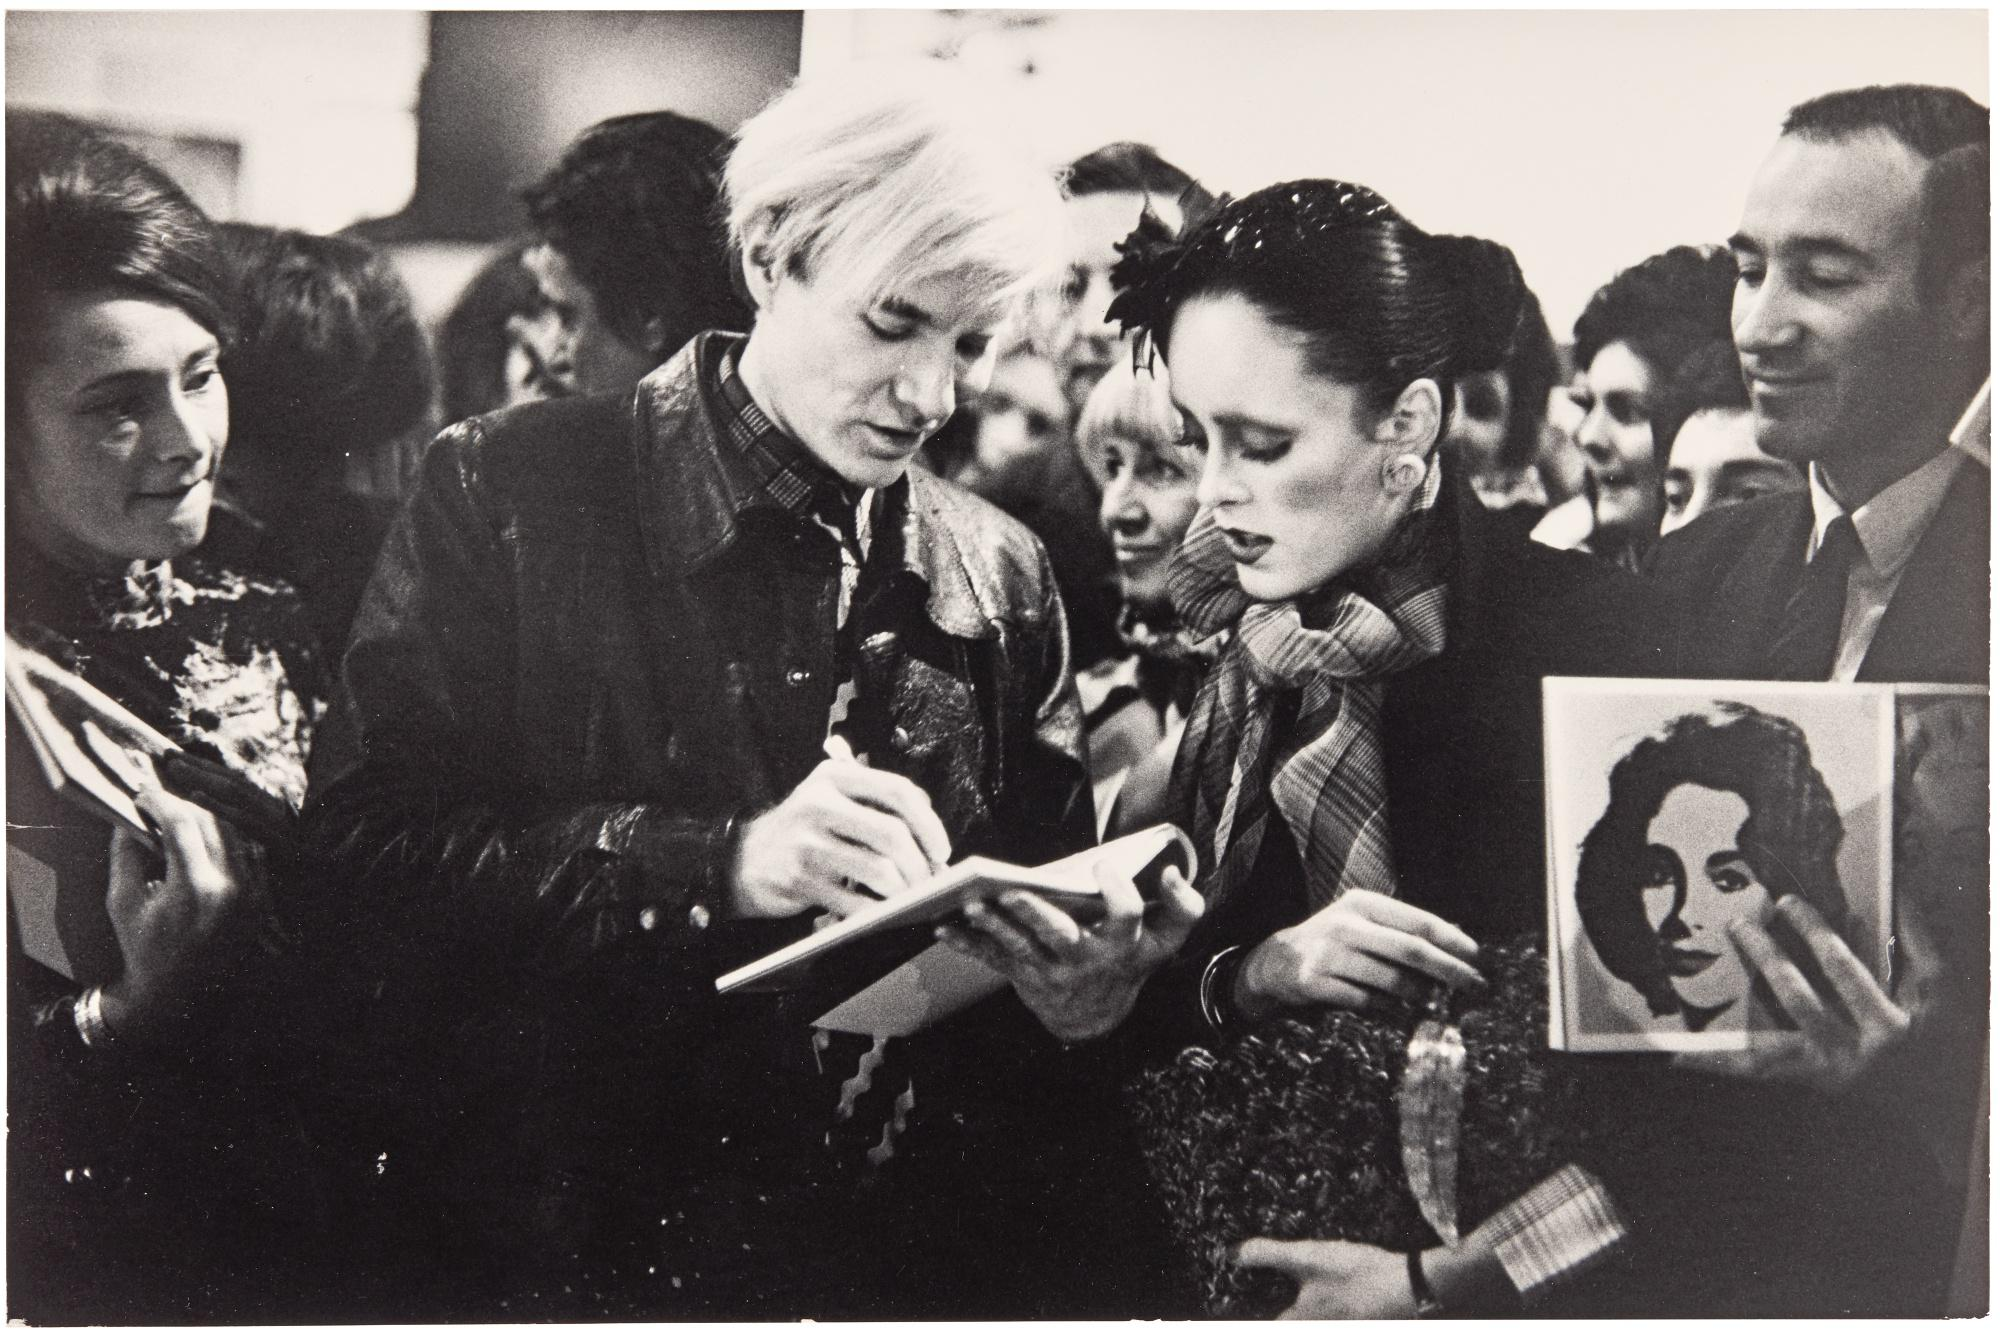 NEIL LIBBERT | ANDY WARHOL AT TATE GALLERY, 1971